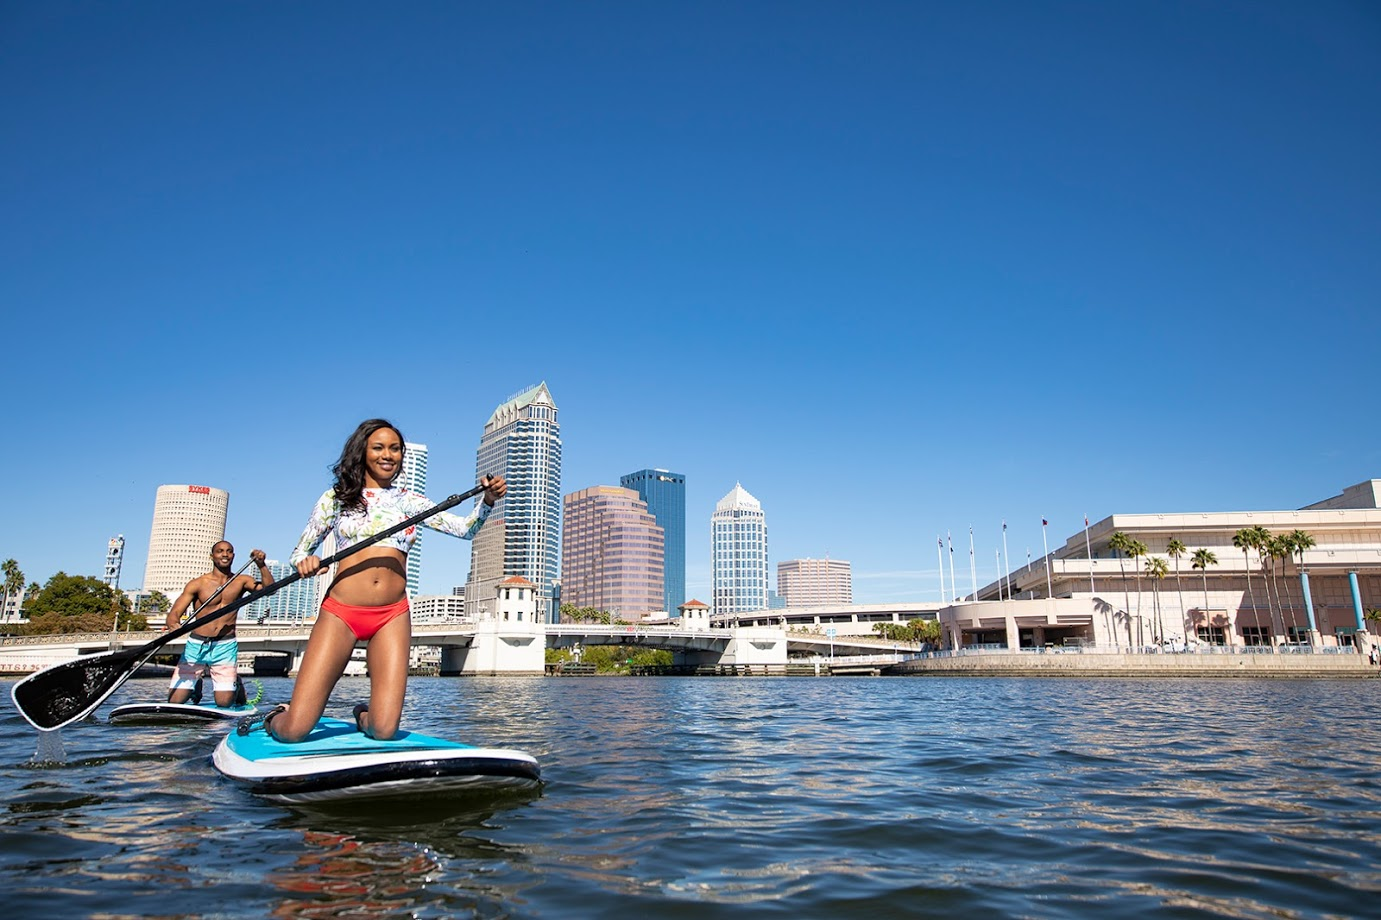 Tampa paddleboards